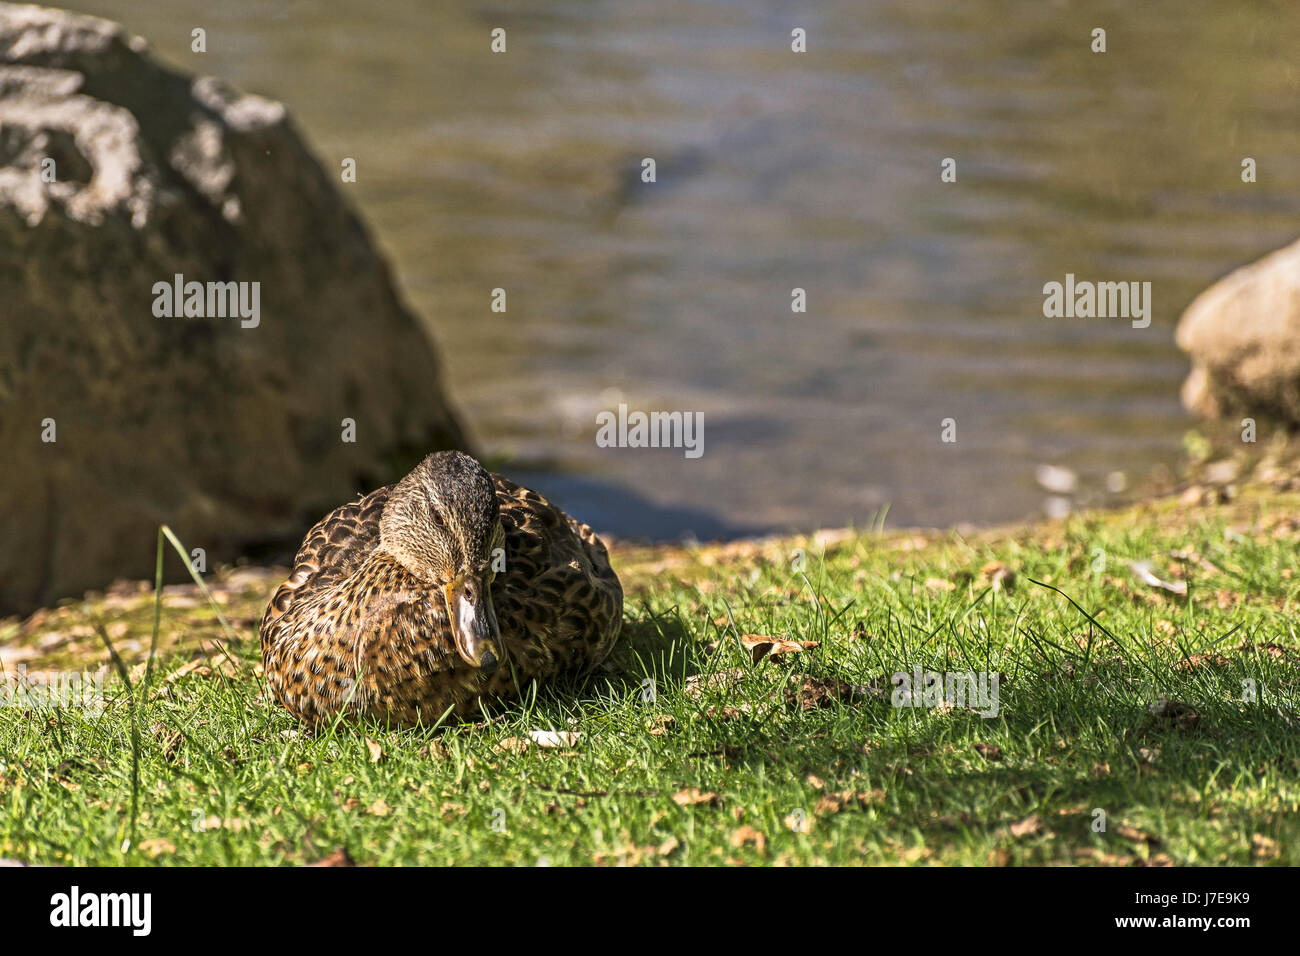 duck crouched on the bow river banks - Stock Image